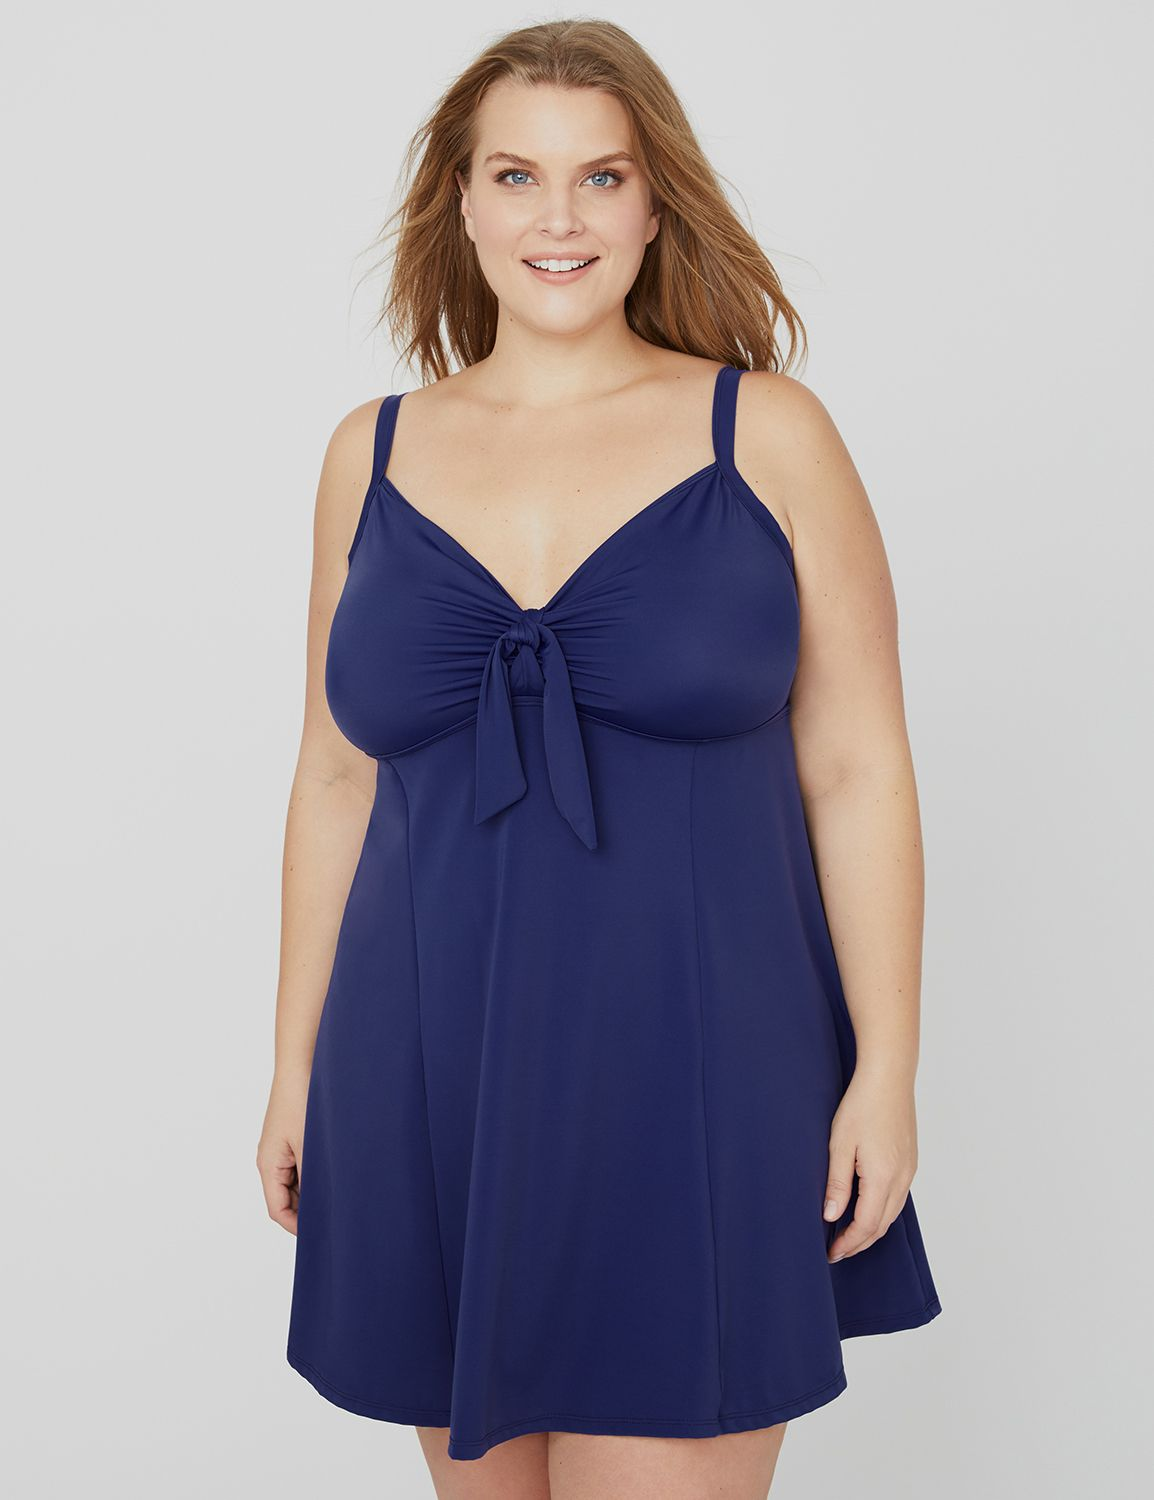 Sugar Hollow Swimdress Tie Front Swim Dress MP-300094187